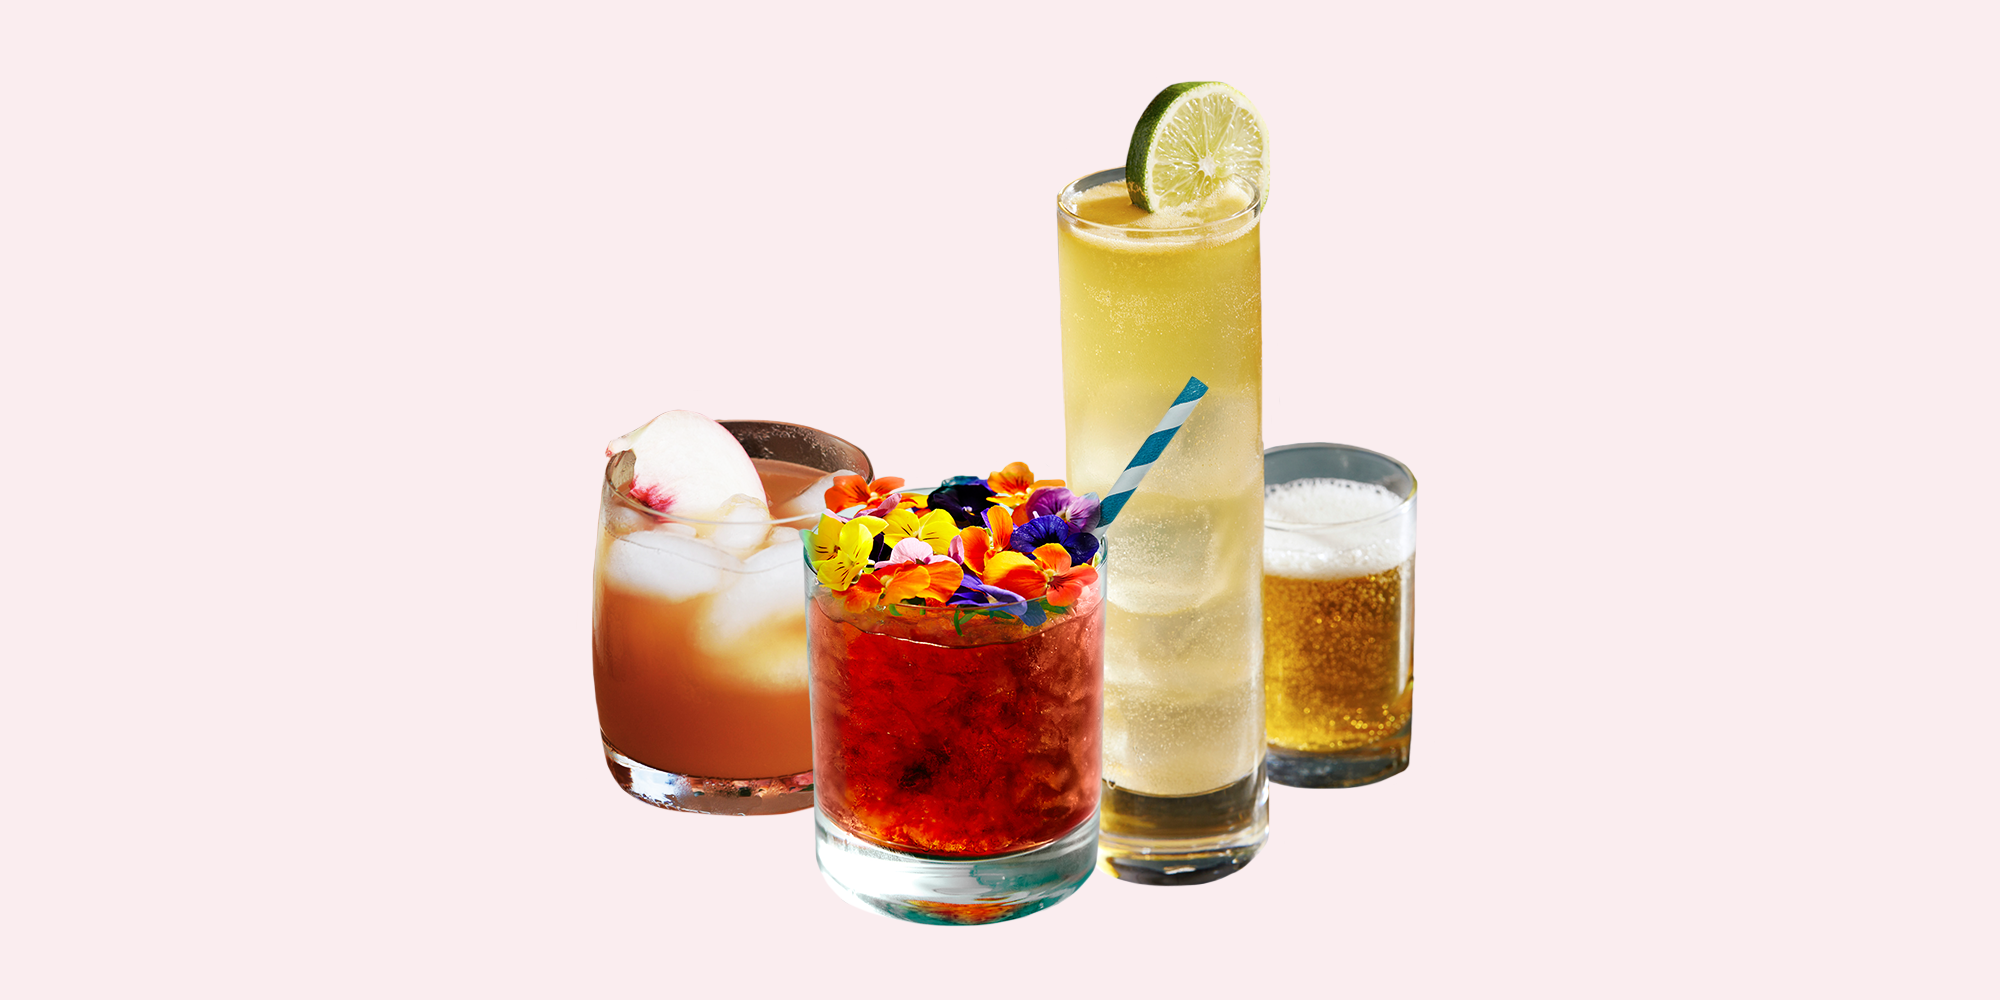 8 Kentucky Derby Cocktails That Pair Perfectly With the Big Race